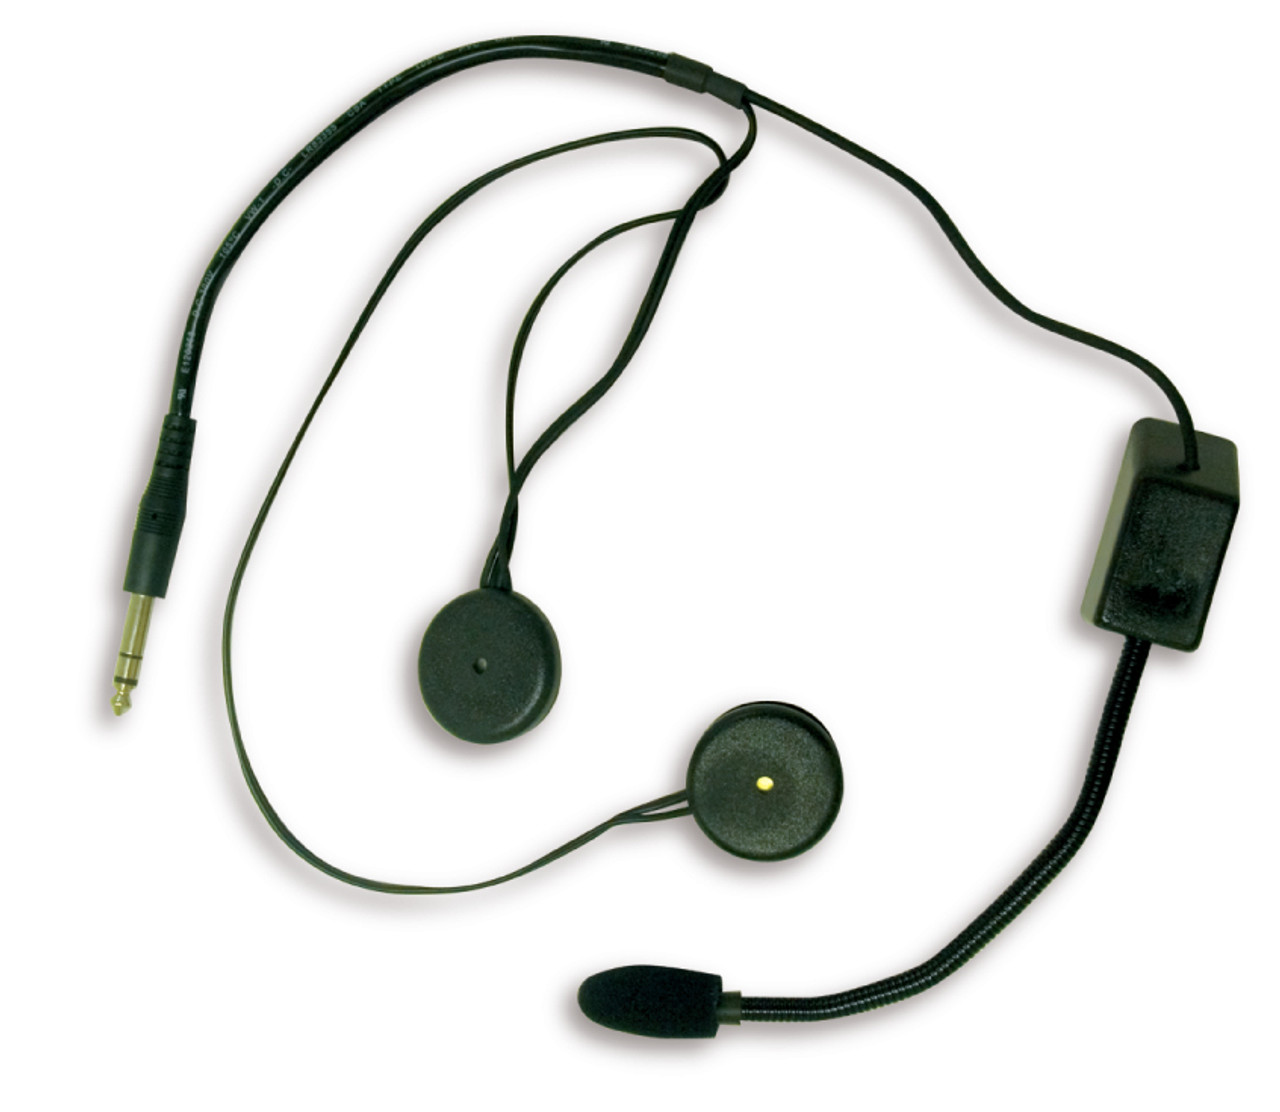 Includes 1 OF headset